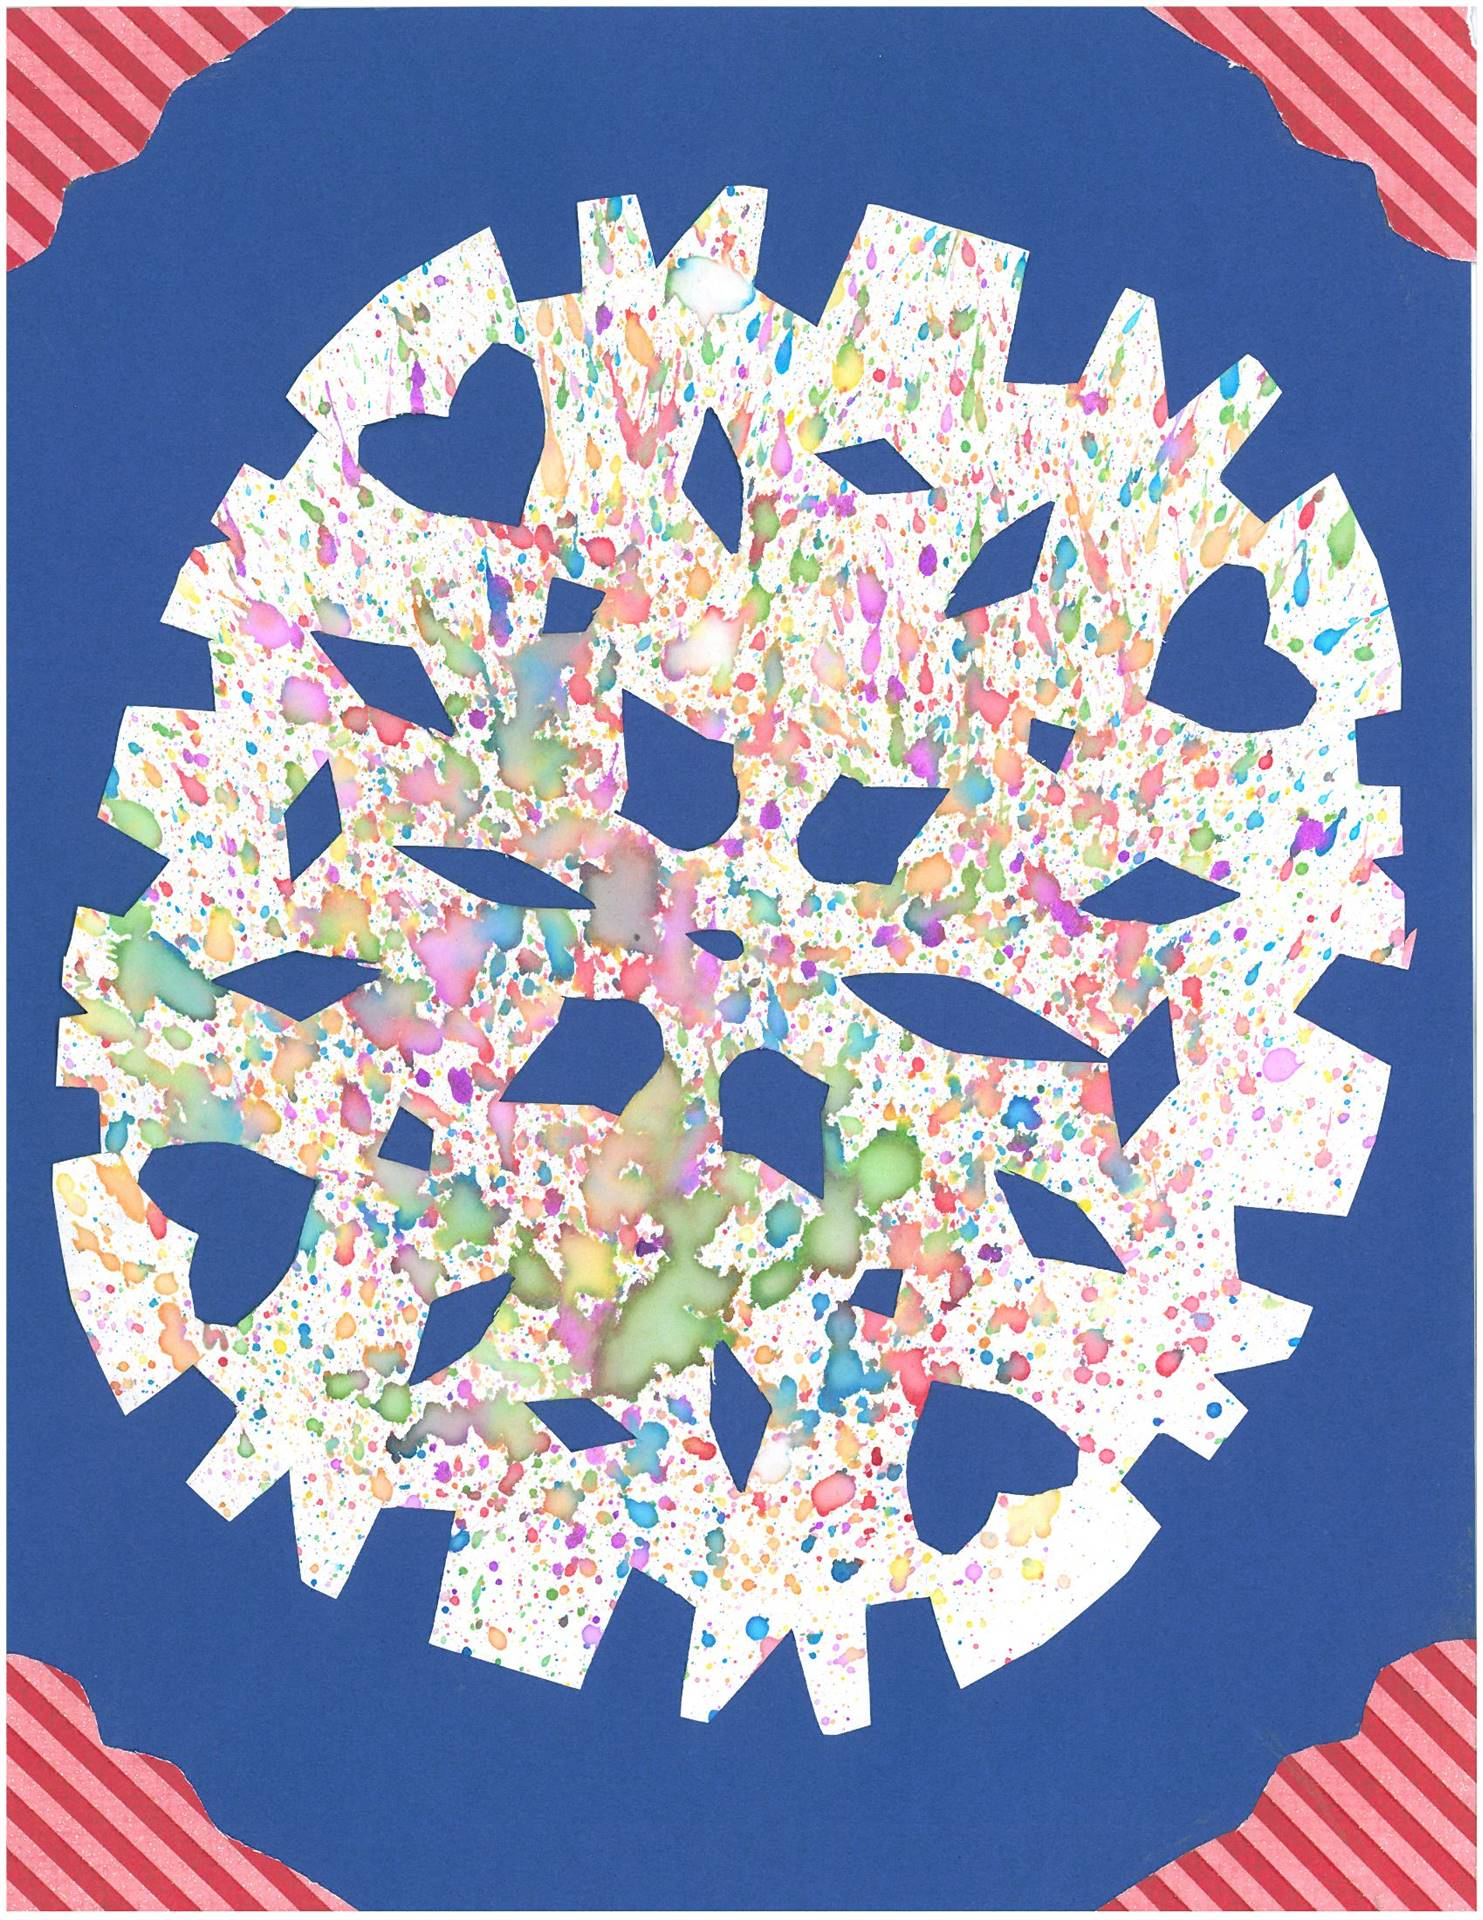 Artwork of watercolor snowflake for holiday card contest